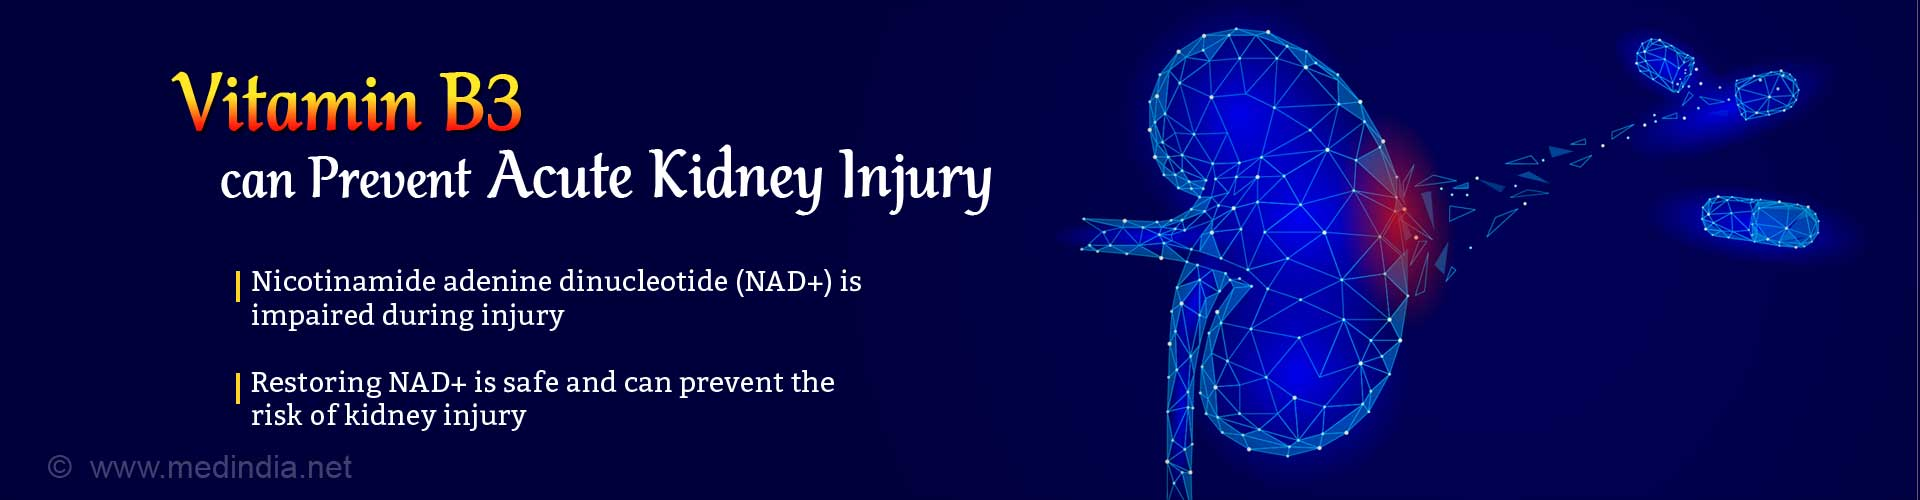 Vitamin B3 can prevent acute kidney injury. Nicotinamide adenine dinucleotide (NAD+) is impaired during kidney injury. Restoring NAD+ is safe and can prevent the risk of kidney injury.